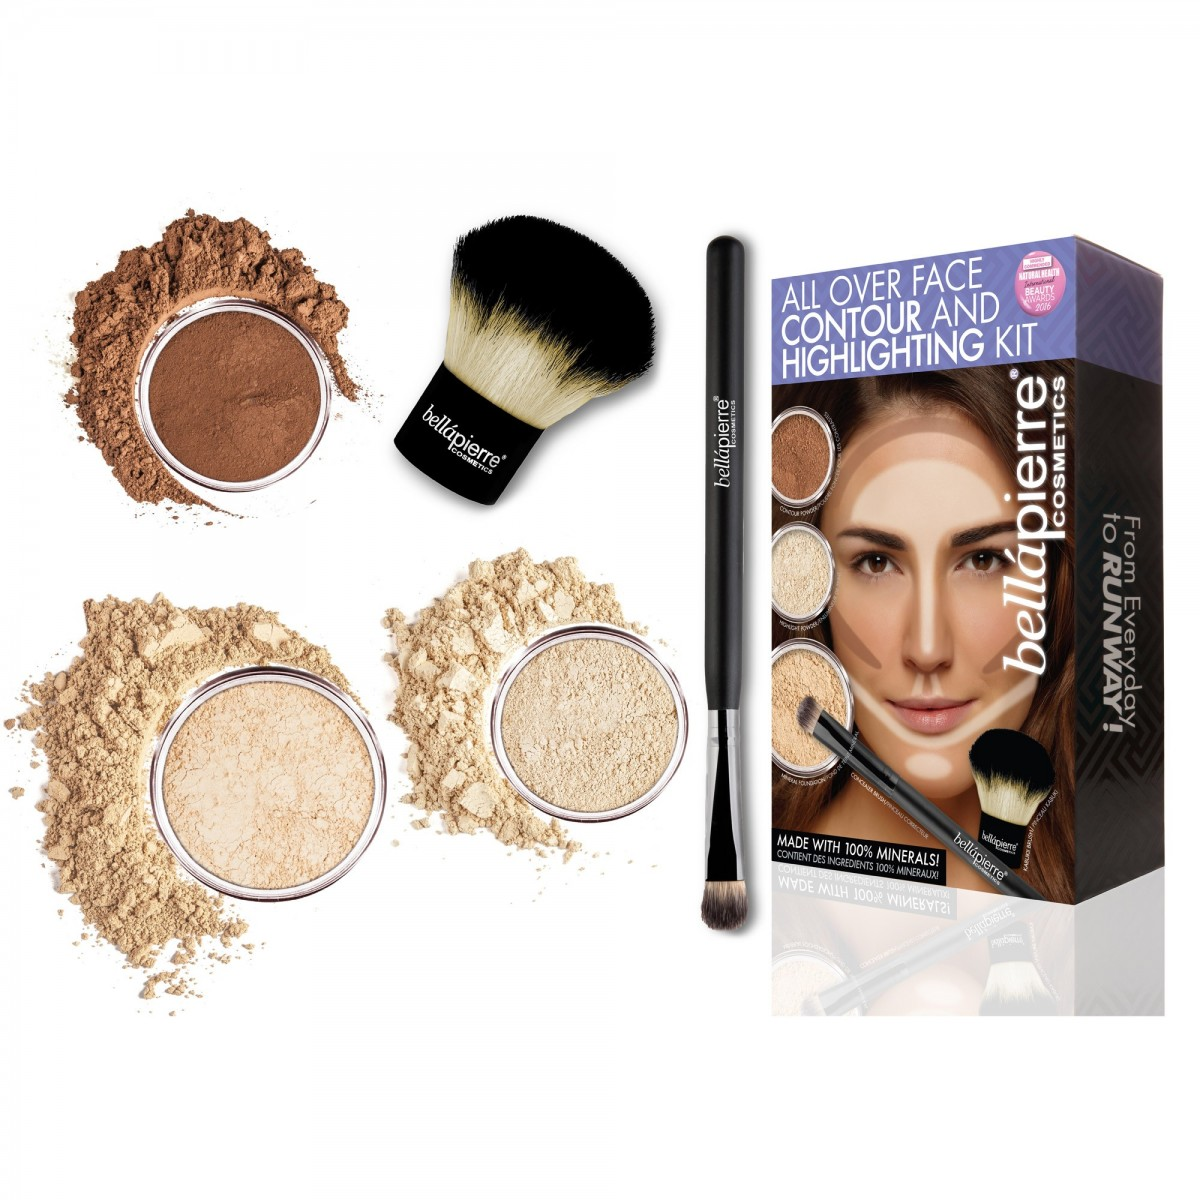 All over face contour and highlighting kit Fair Bellapierre Cosmetics